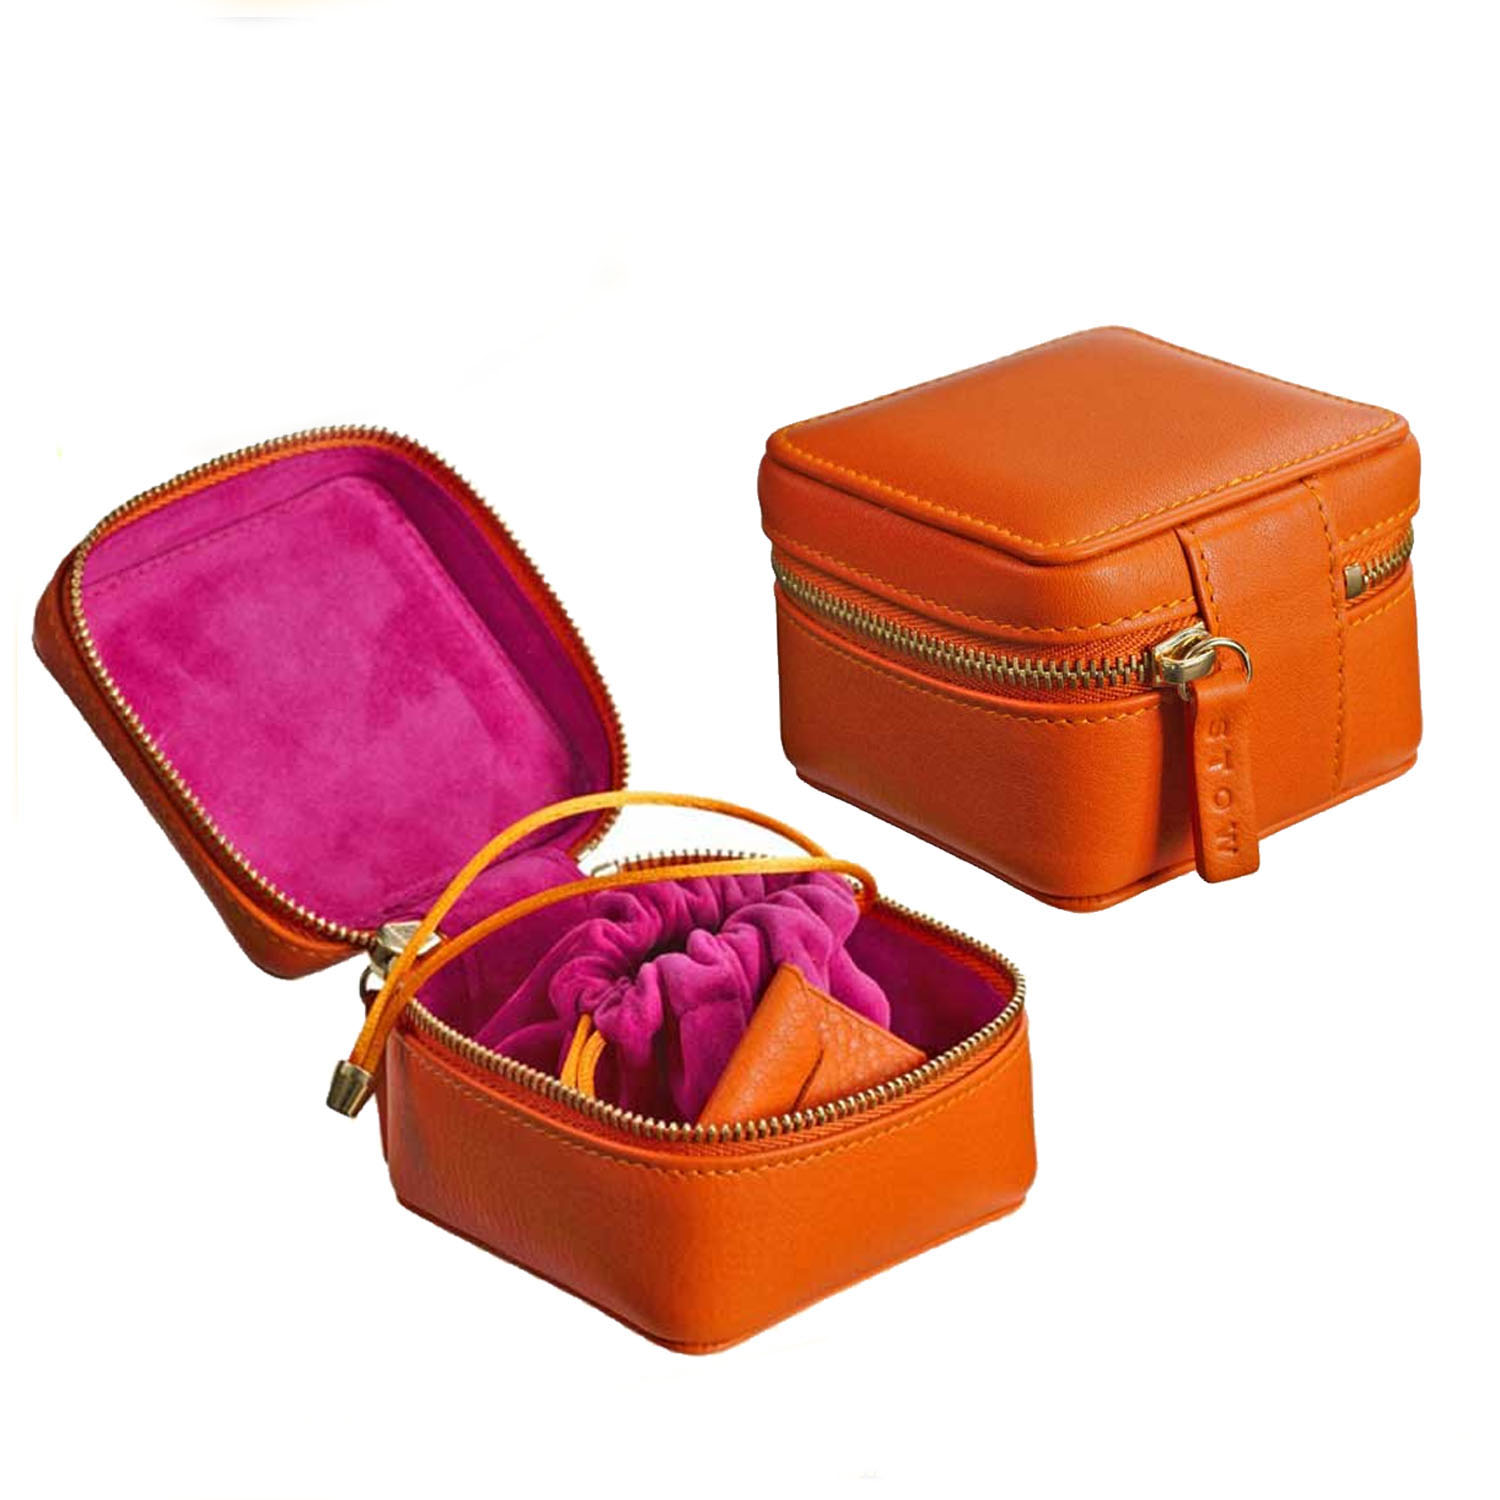 China Supplier Hot Selling Leather Round Jewelry Gift Box